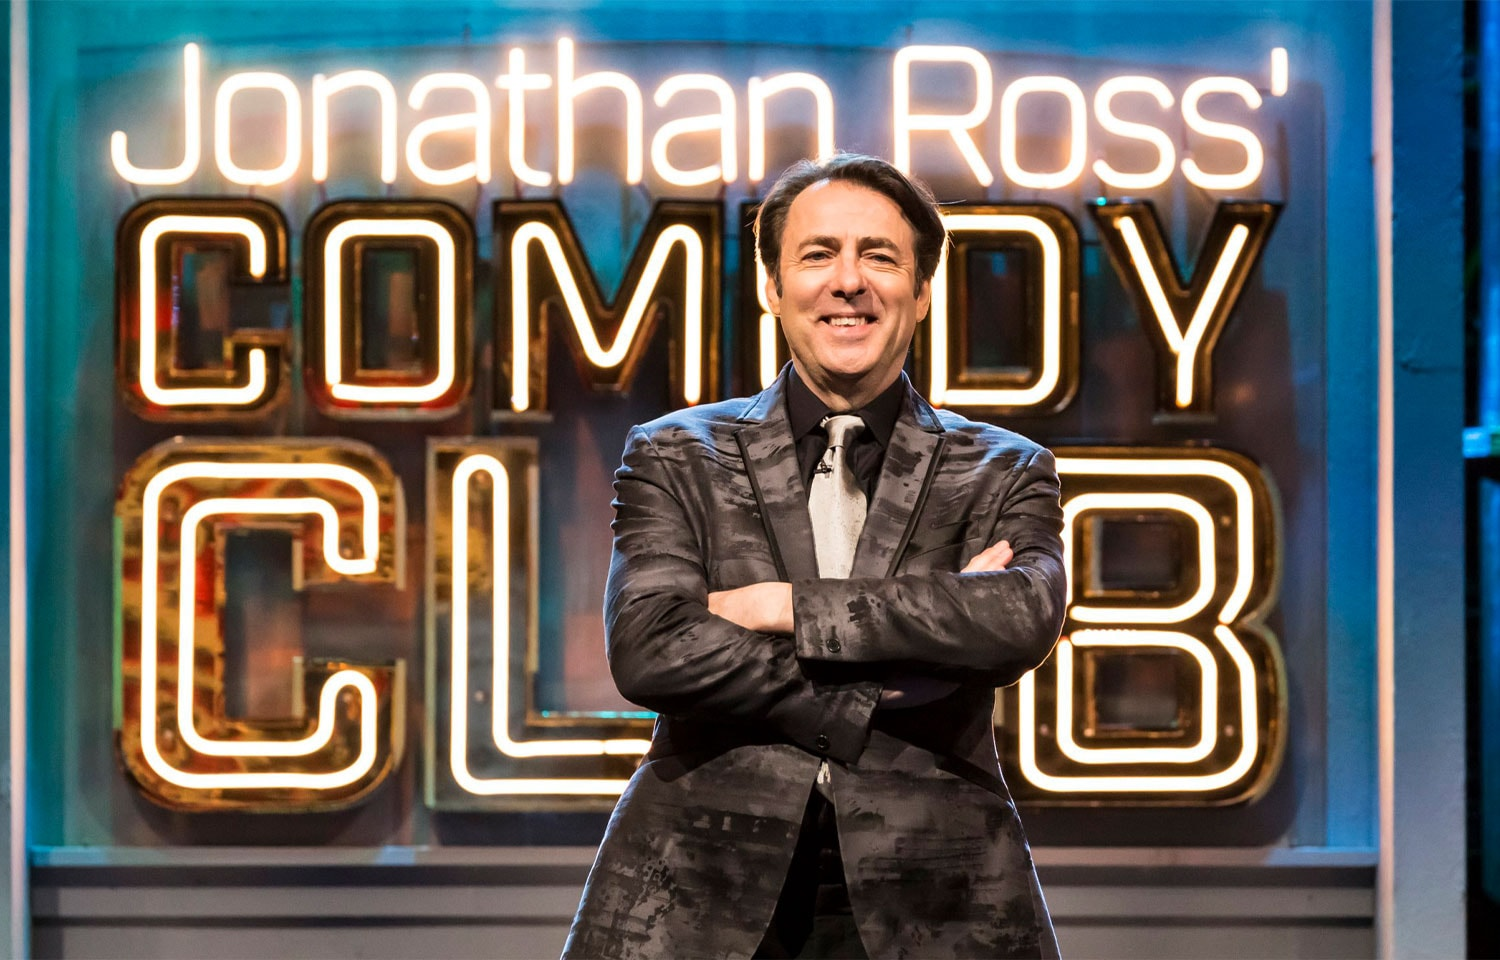 JONATHAN ROSS' COMEDY CLUB BEGINS SATURDAY 12TH SEPTEMBER